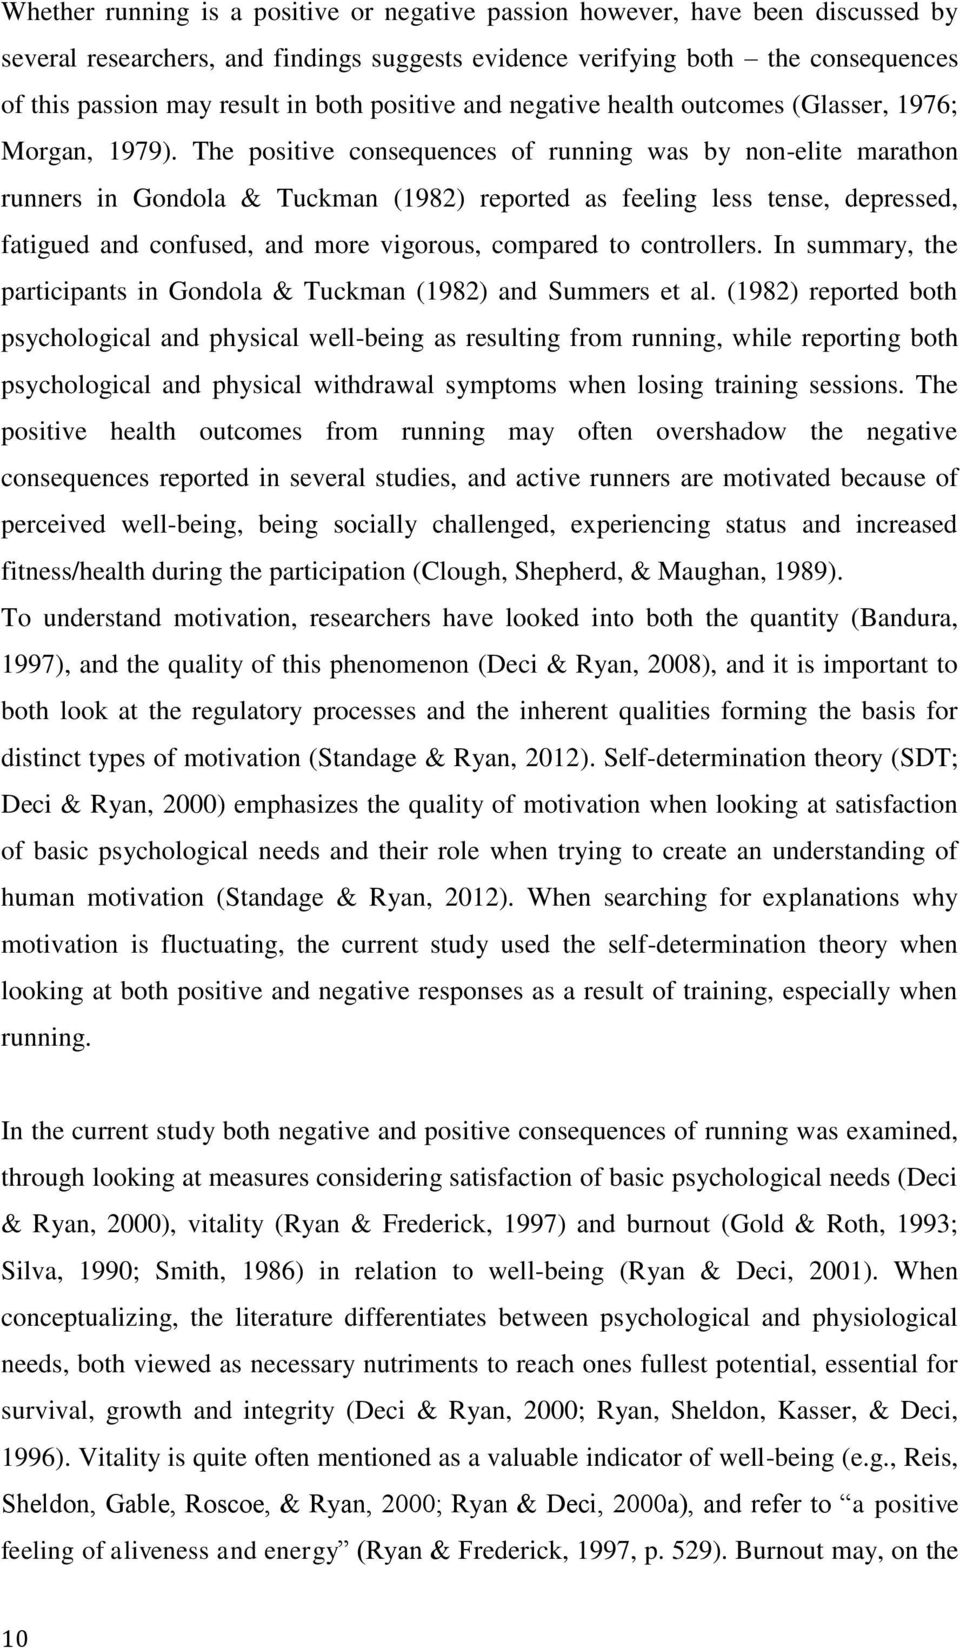 The positive consequences of running was by non-elite marathon runners in Gondola & Tuckman (1982) reported as feeling less tense, depressed, fatigued and confused, and more vigorous, compared to